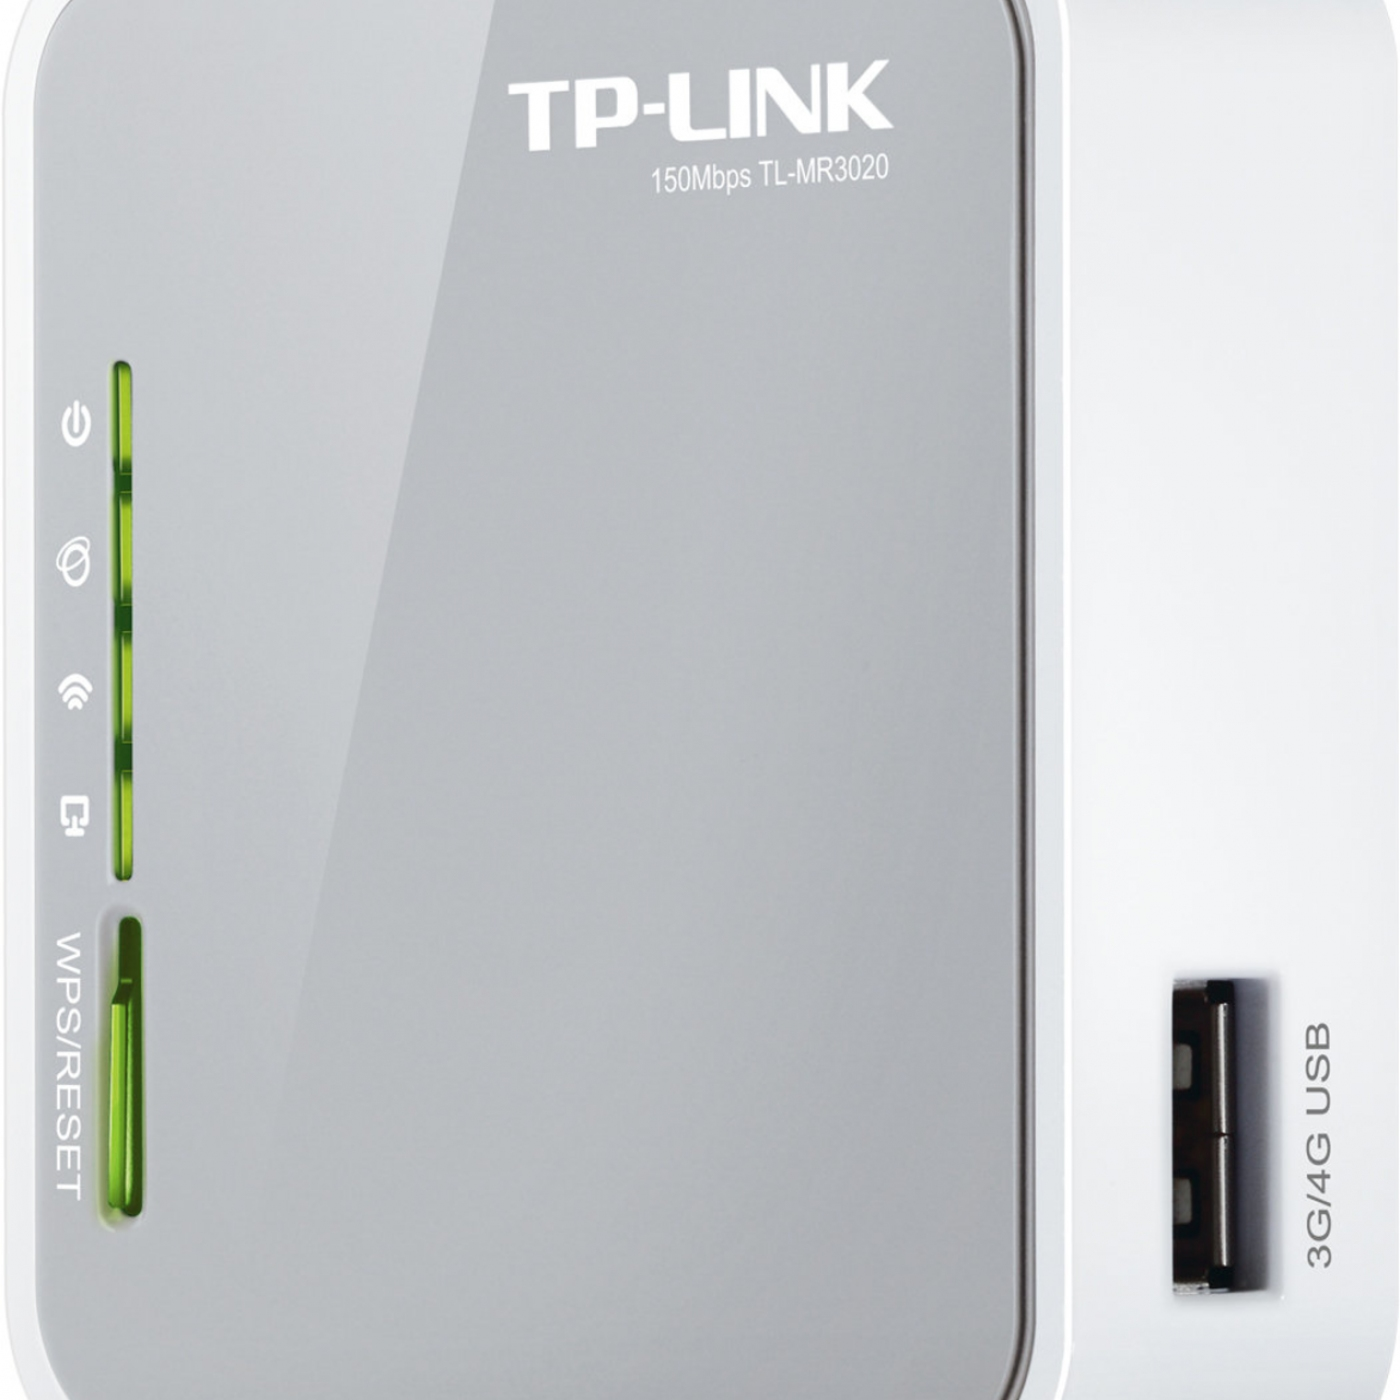 Маршрутизатор TP-Link TL-MR3020 3G/3.75G Wireless N Router